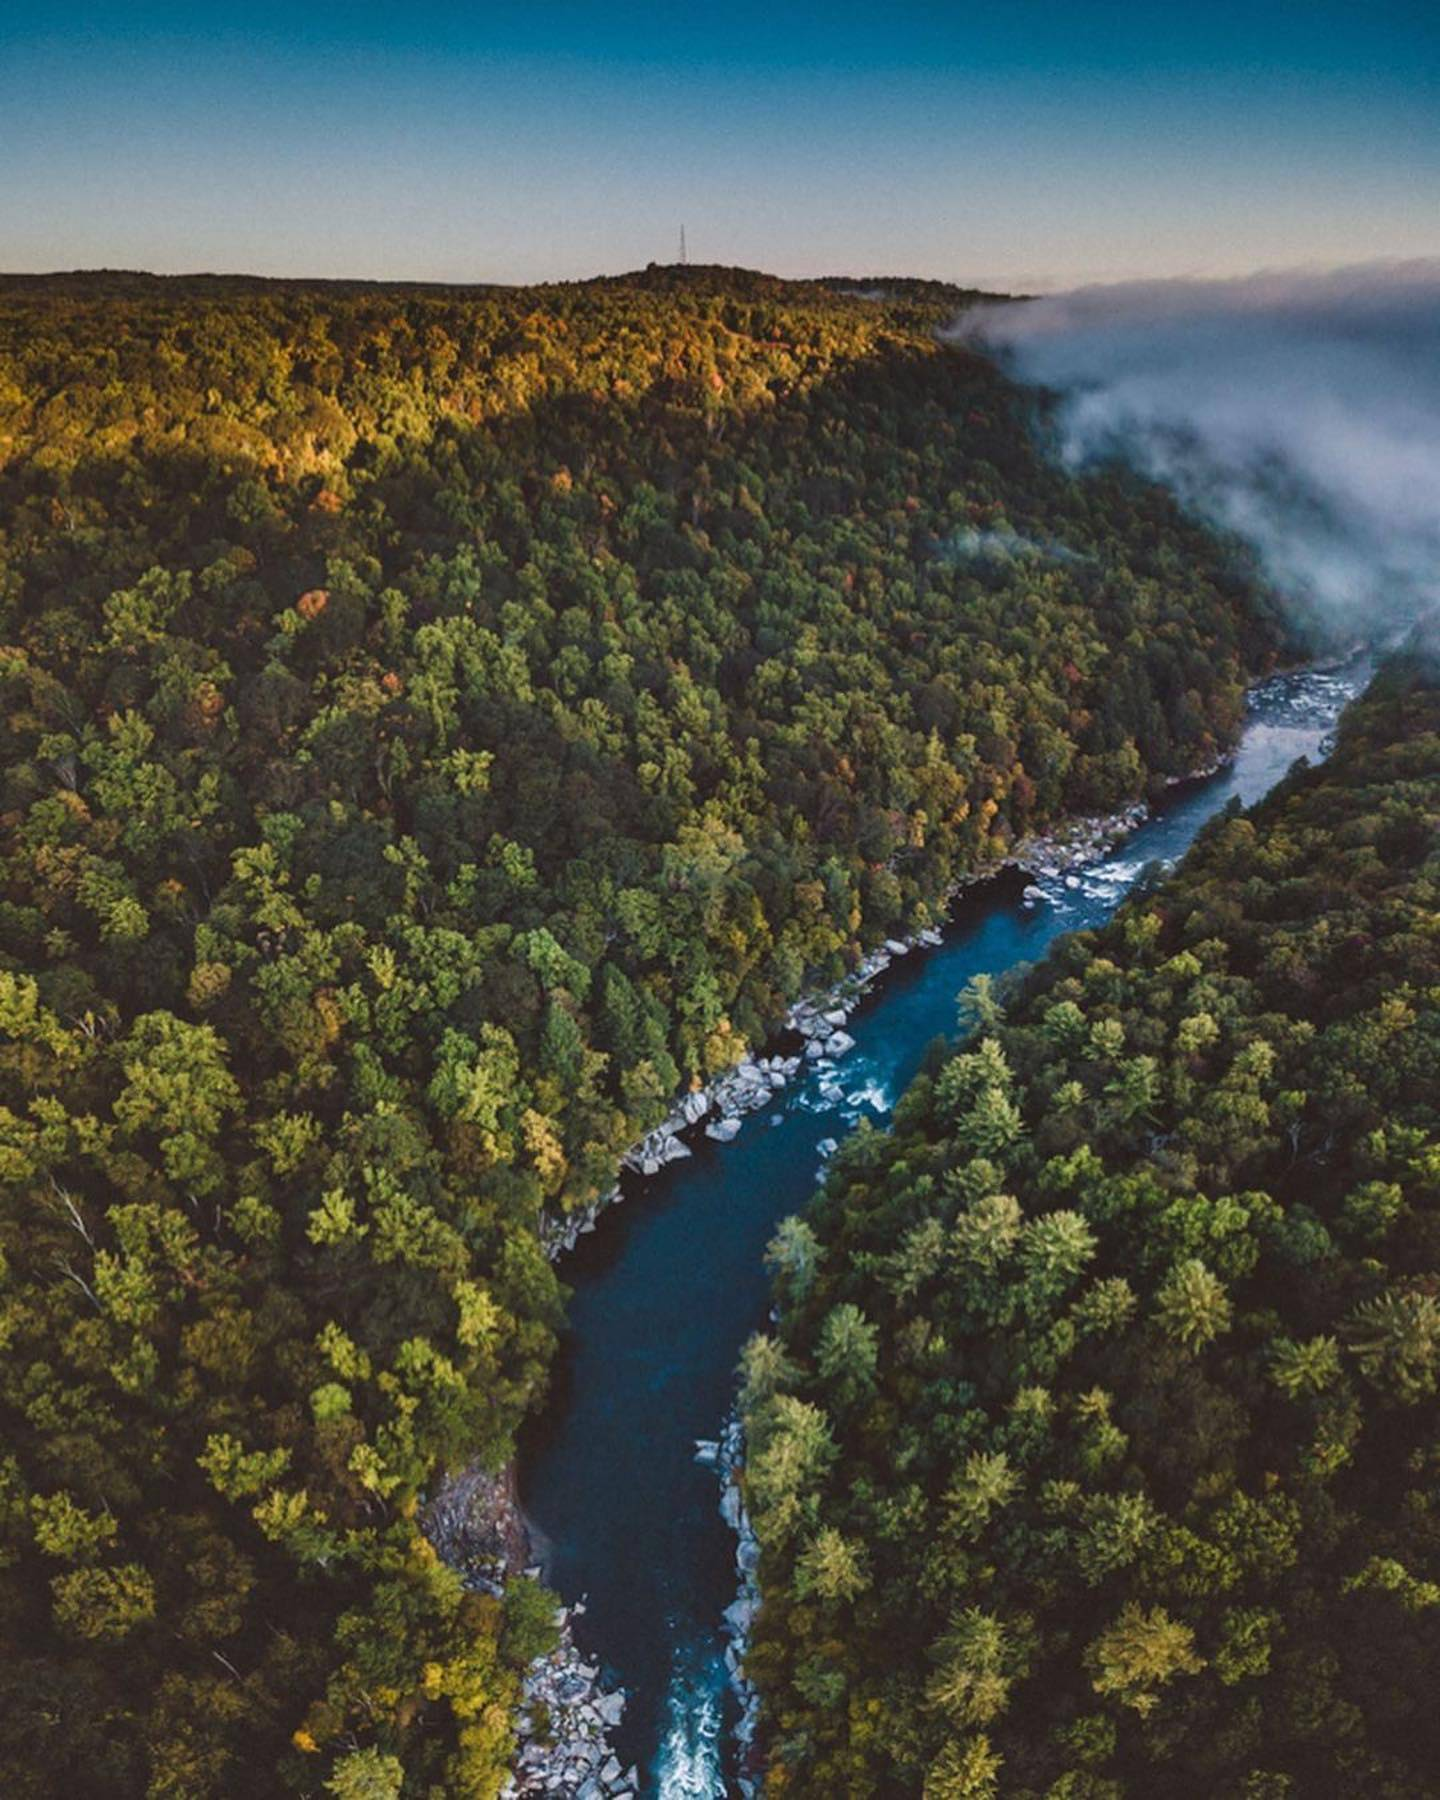 The Youghiogheny River in Ohiopyle State Park